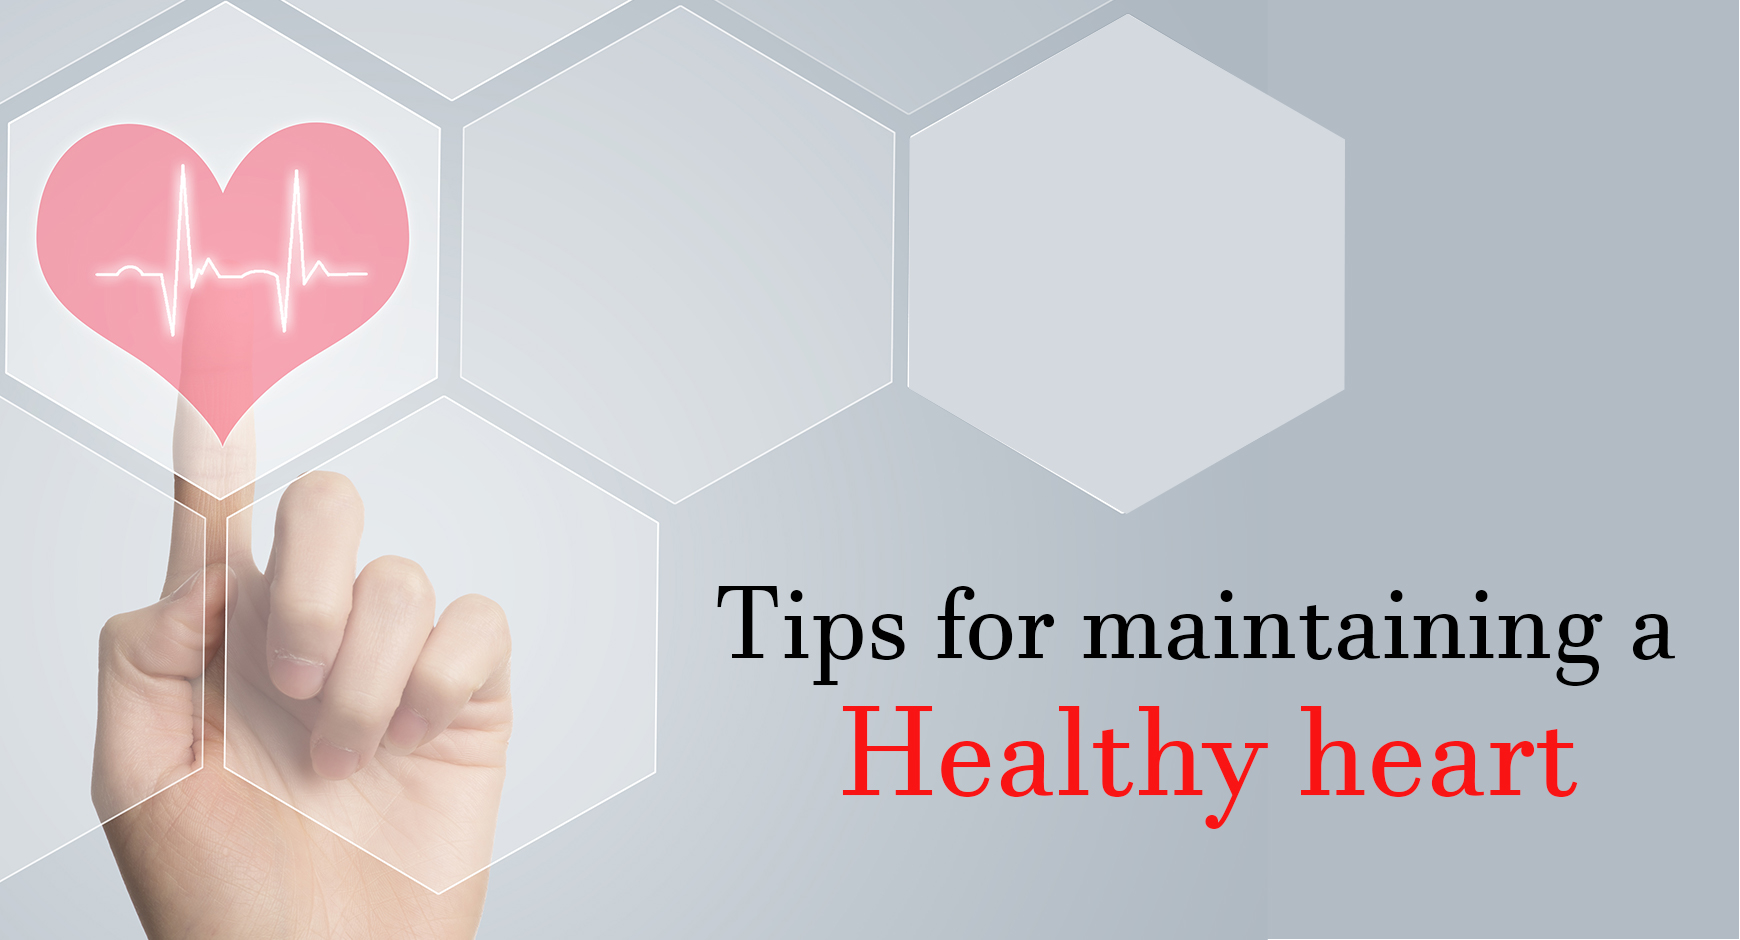 Tips for maintaining a healthy heart